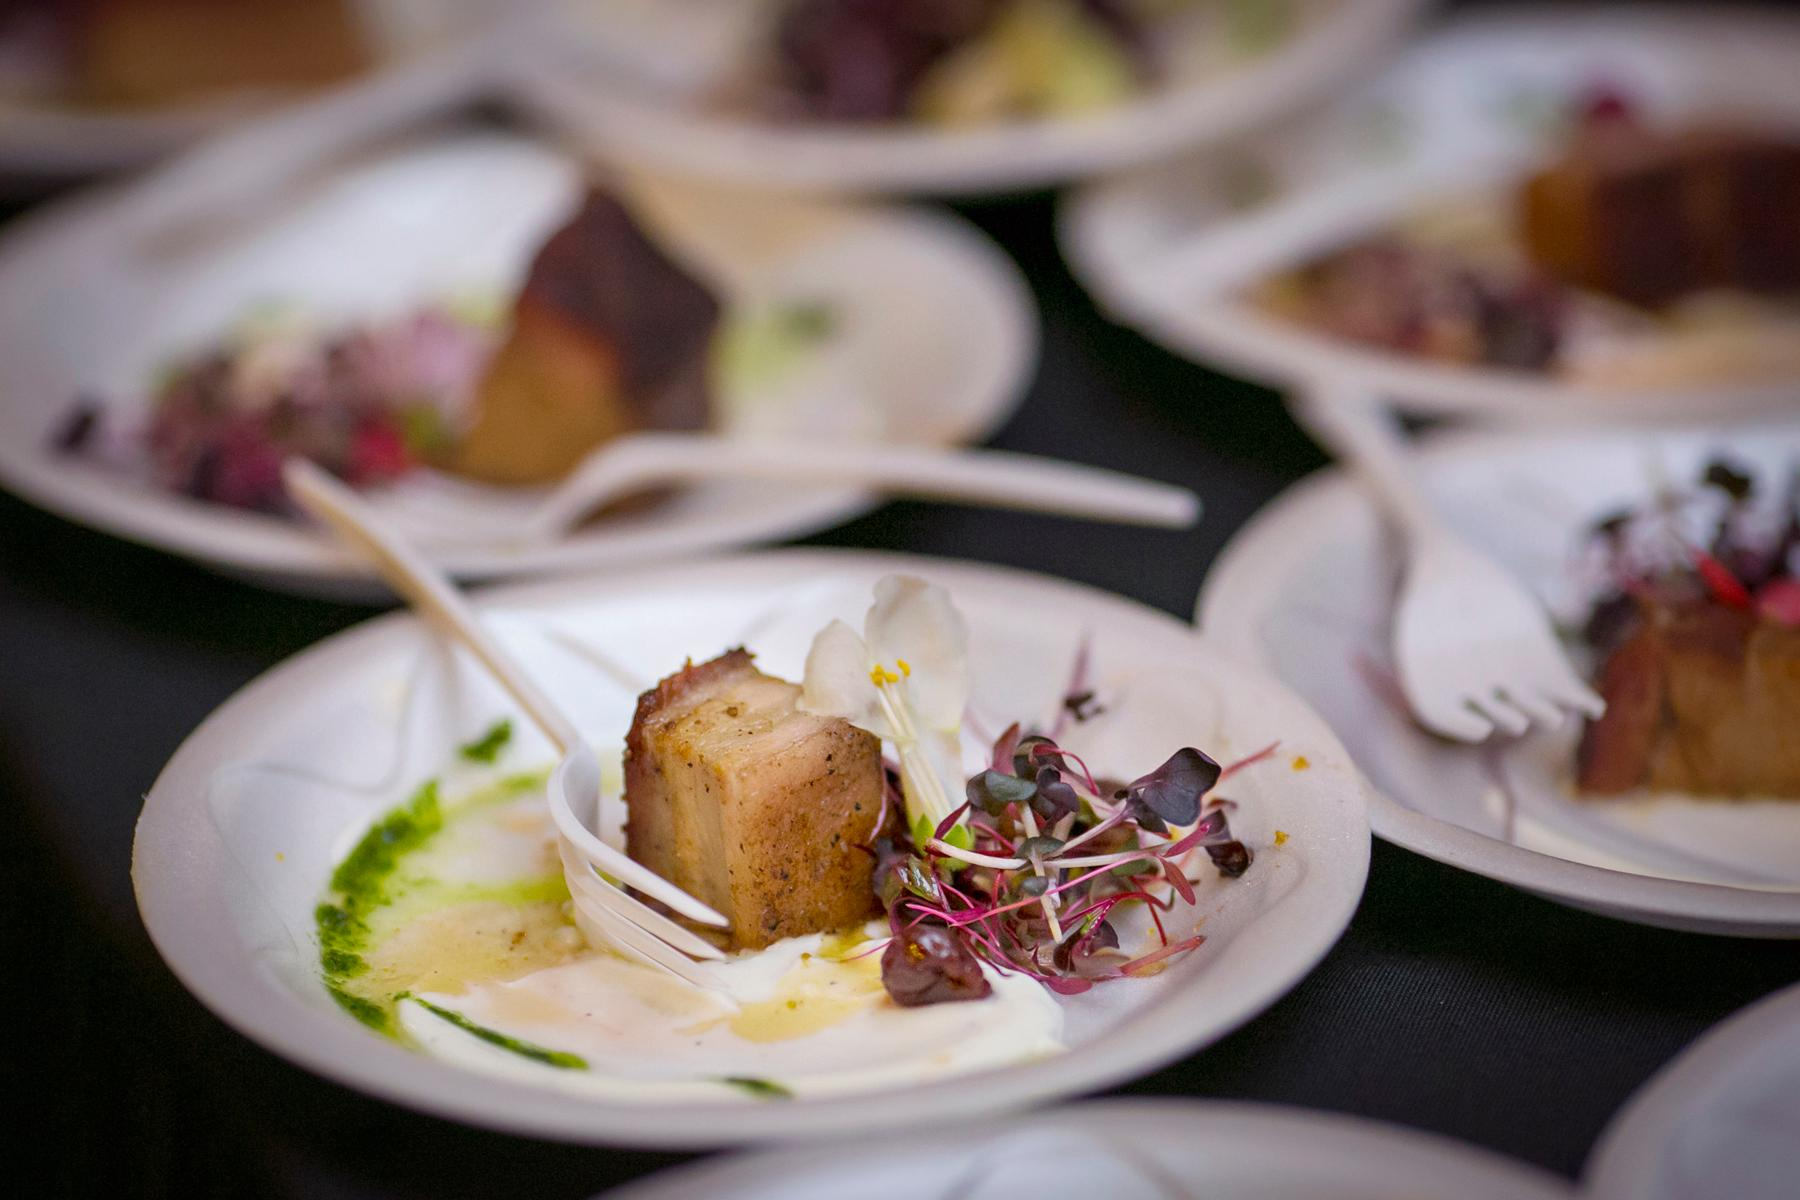 The 12th annual Art of Food took place at The Carnegie in Covington on Friday, Feb. 9, 2018. The event included bite-sized dishes from over 20 chefs and restaurants, visual displays of food-centric art, and entertainment from local artists. / Image: Mike Bresnen Photography / Published: 2.10.18